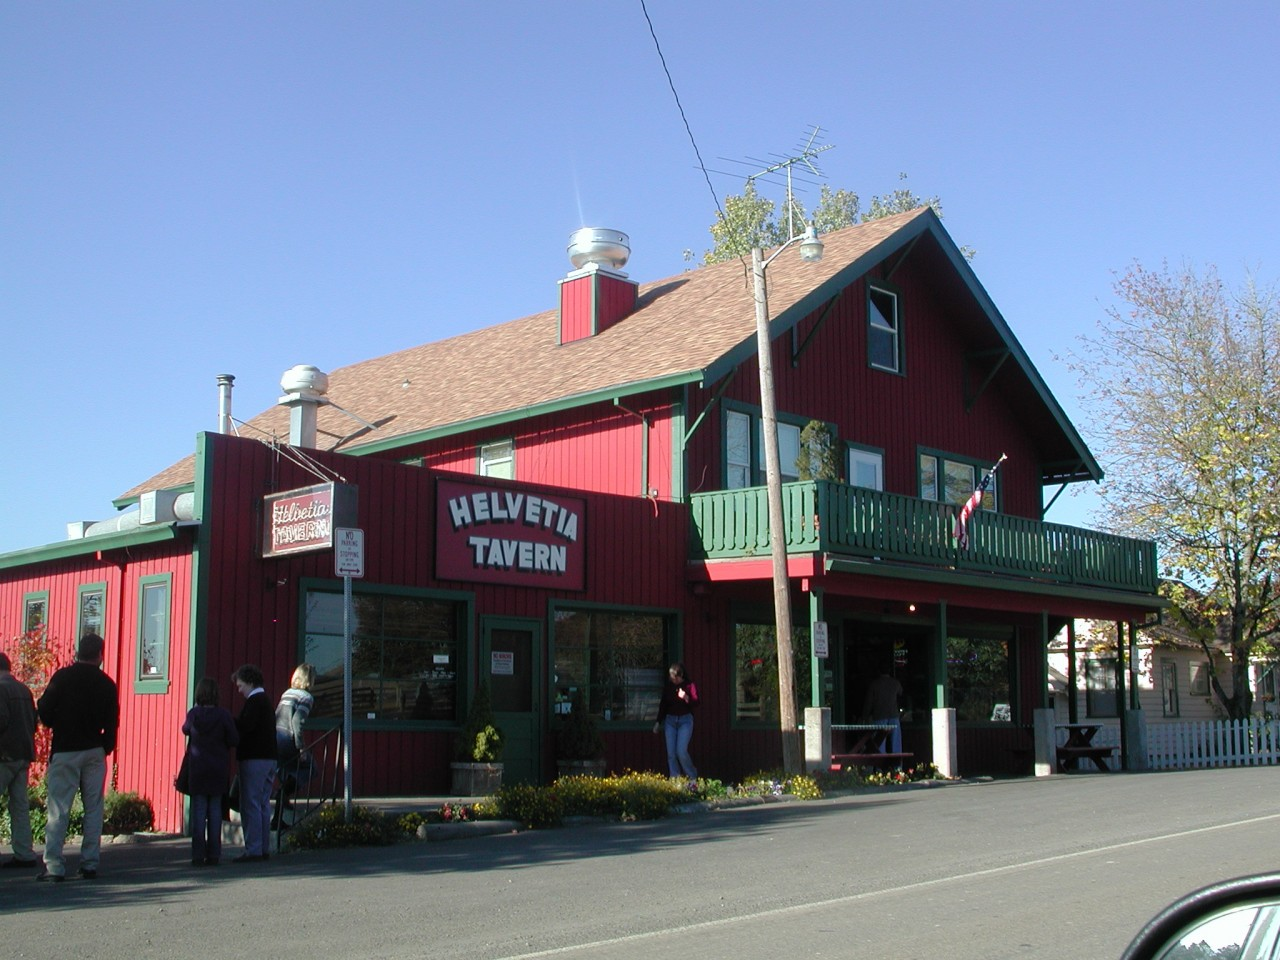 Helvetia Tavern in the Tualatin Valley